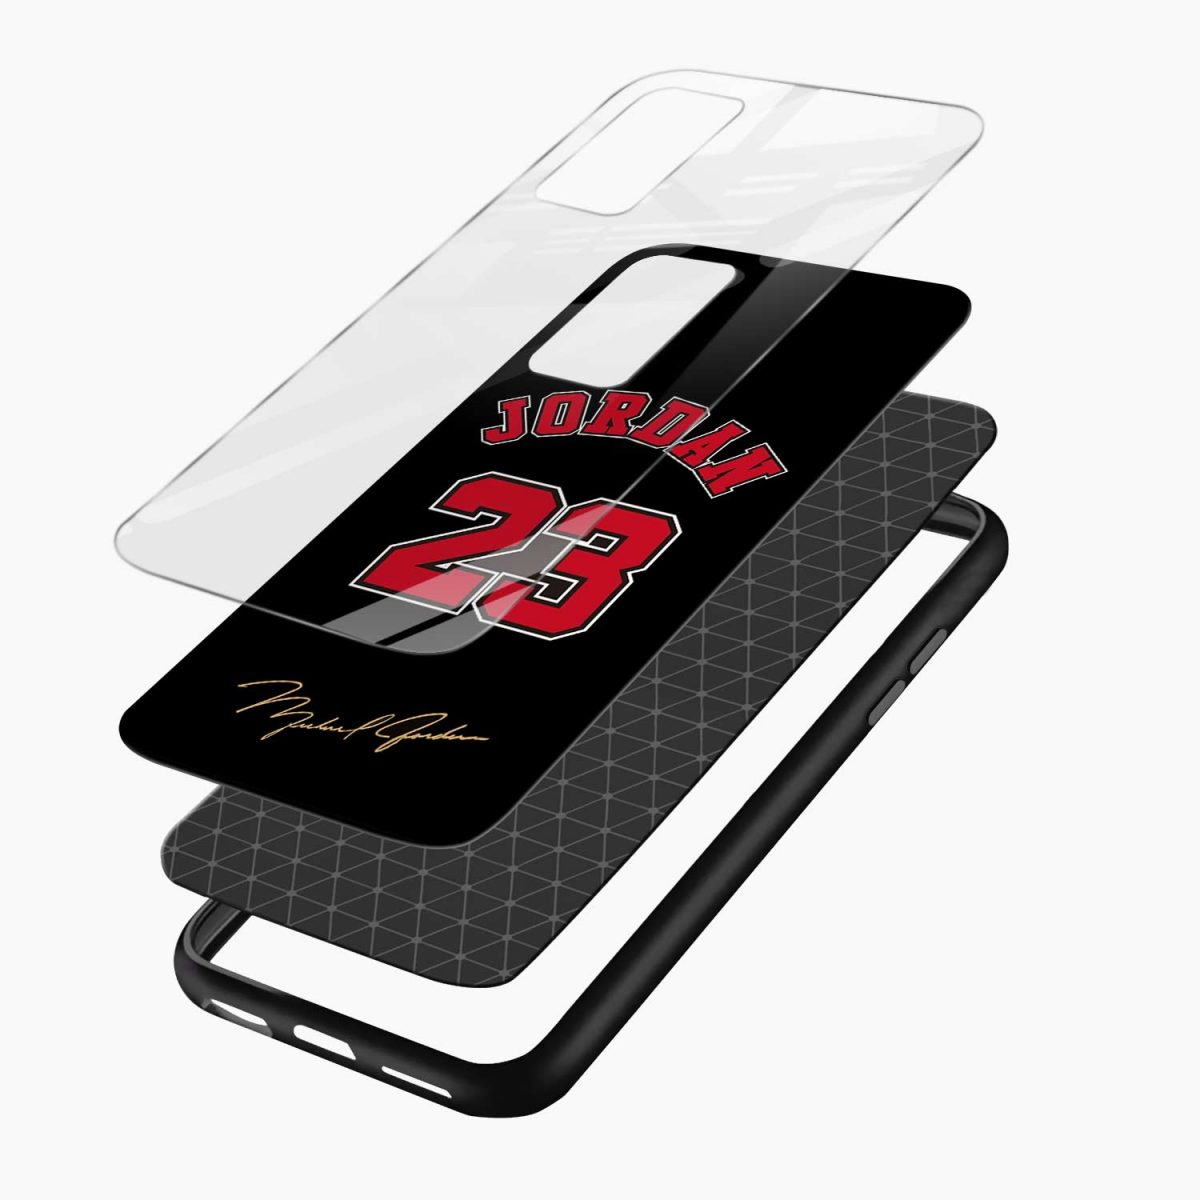 jordan 23 layers view oneplus 9 pro back cover